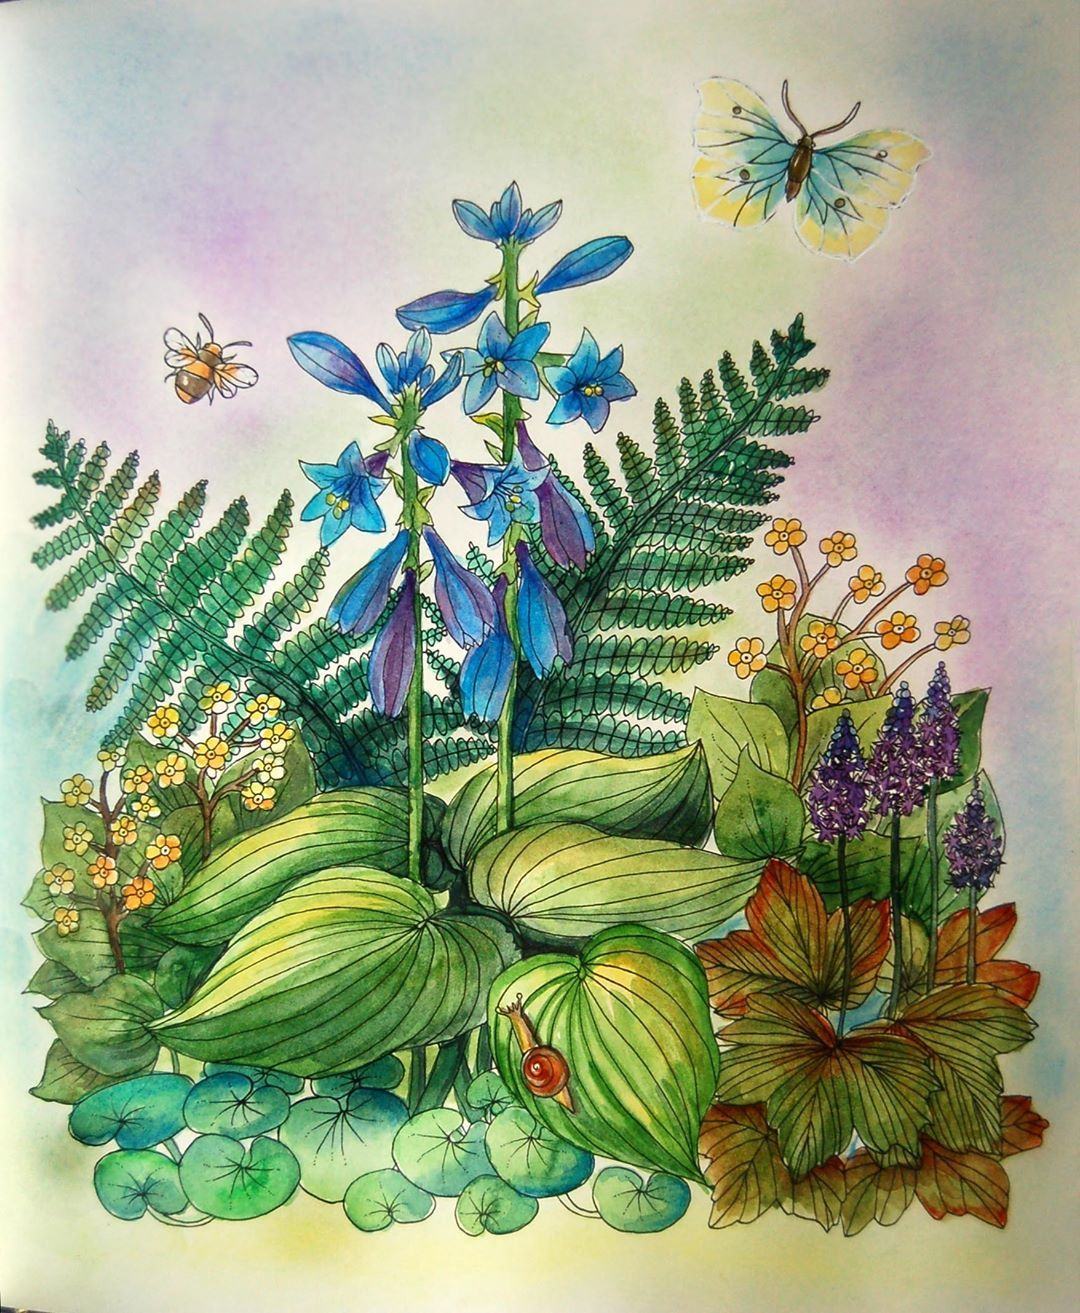 Coloring With Watercolor Paints In Swedish Edition Of Nightfall Skymningstimman By Maria Trolle Malarbok Colo Coloring Books Colorful Drawings Painting